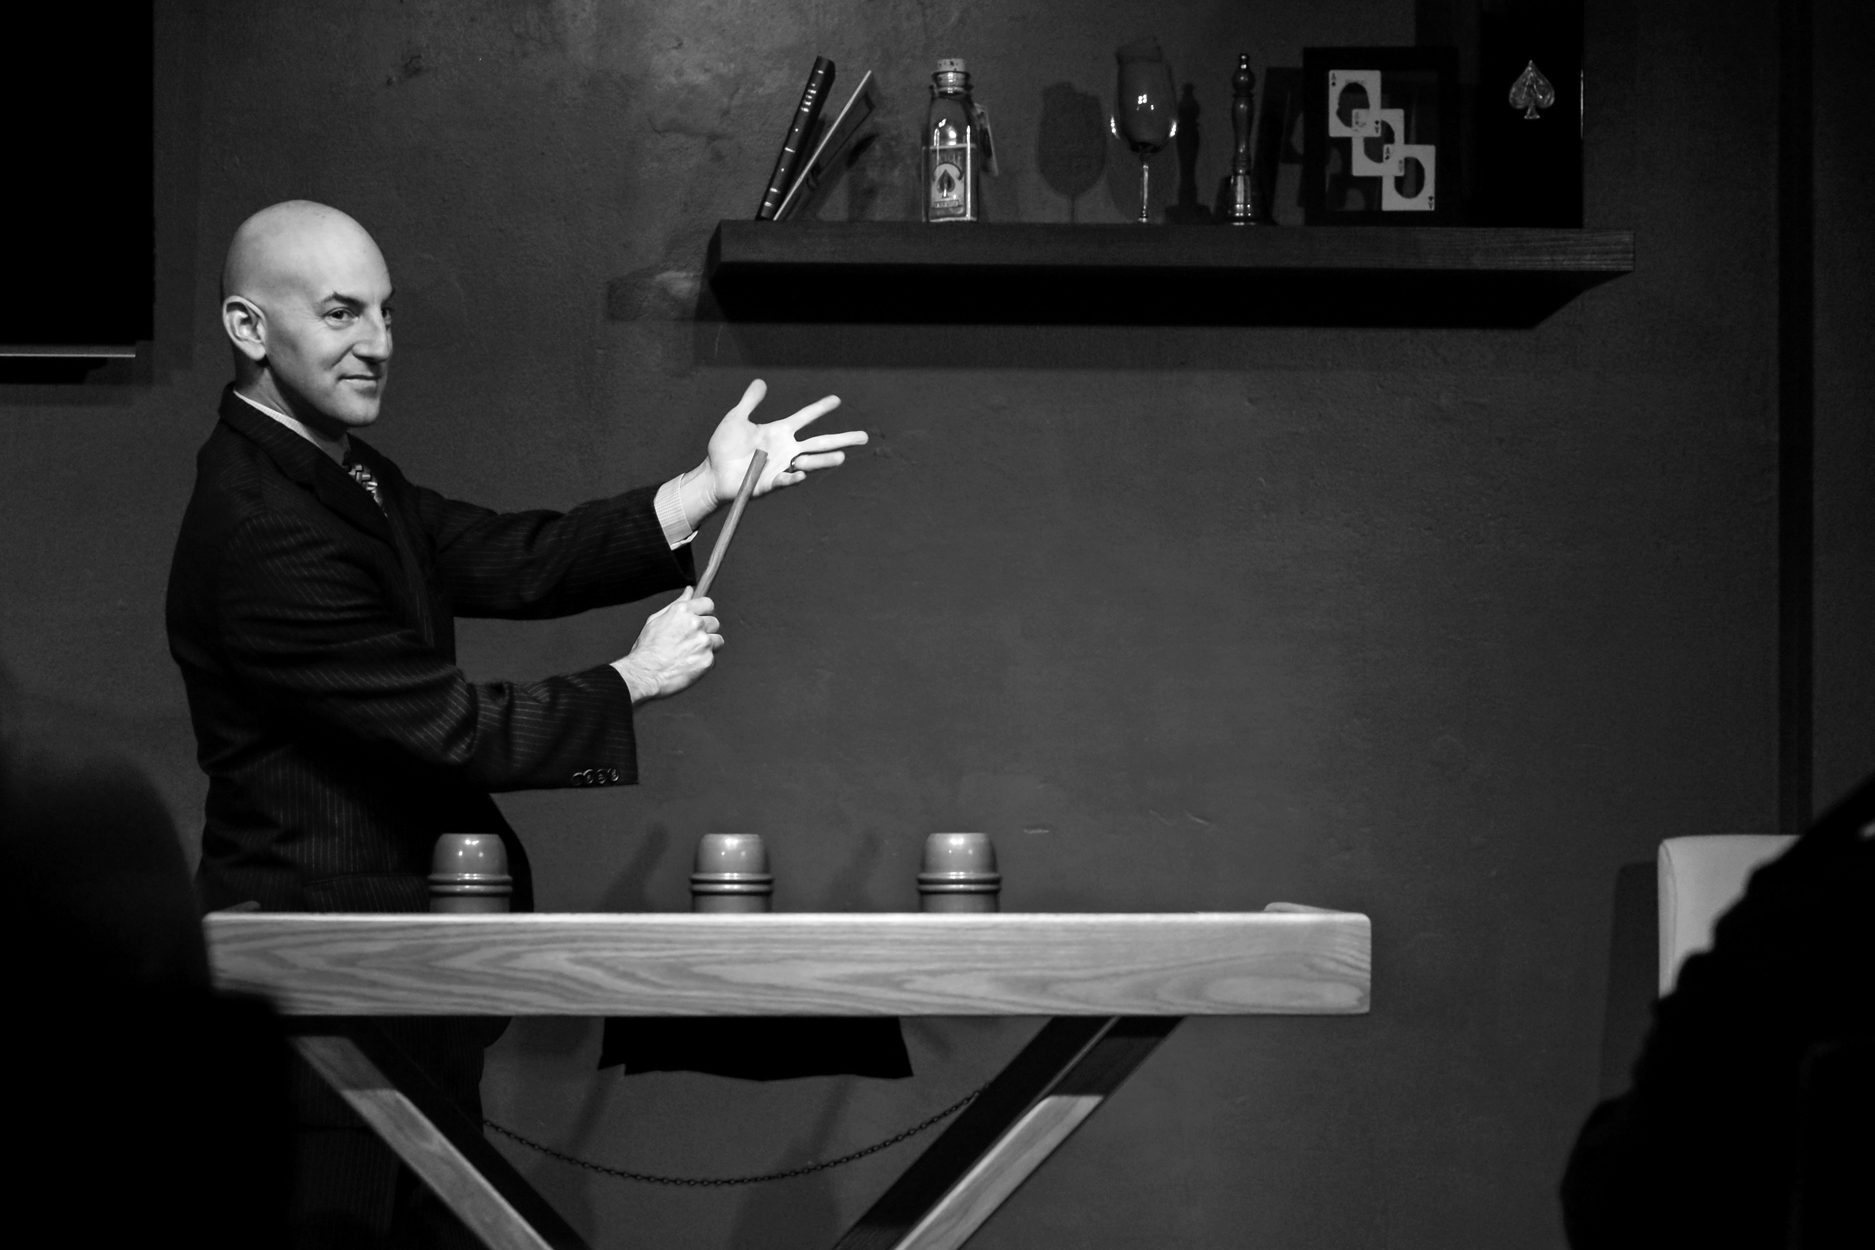 Magician Sebastian performs Intimate Miracles at the Red Spade Theater